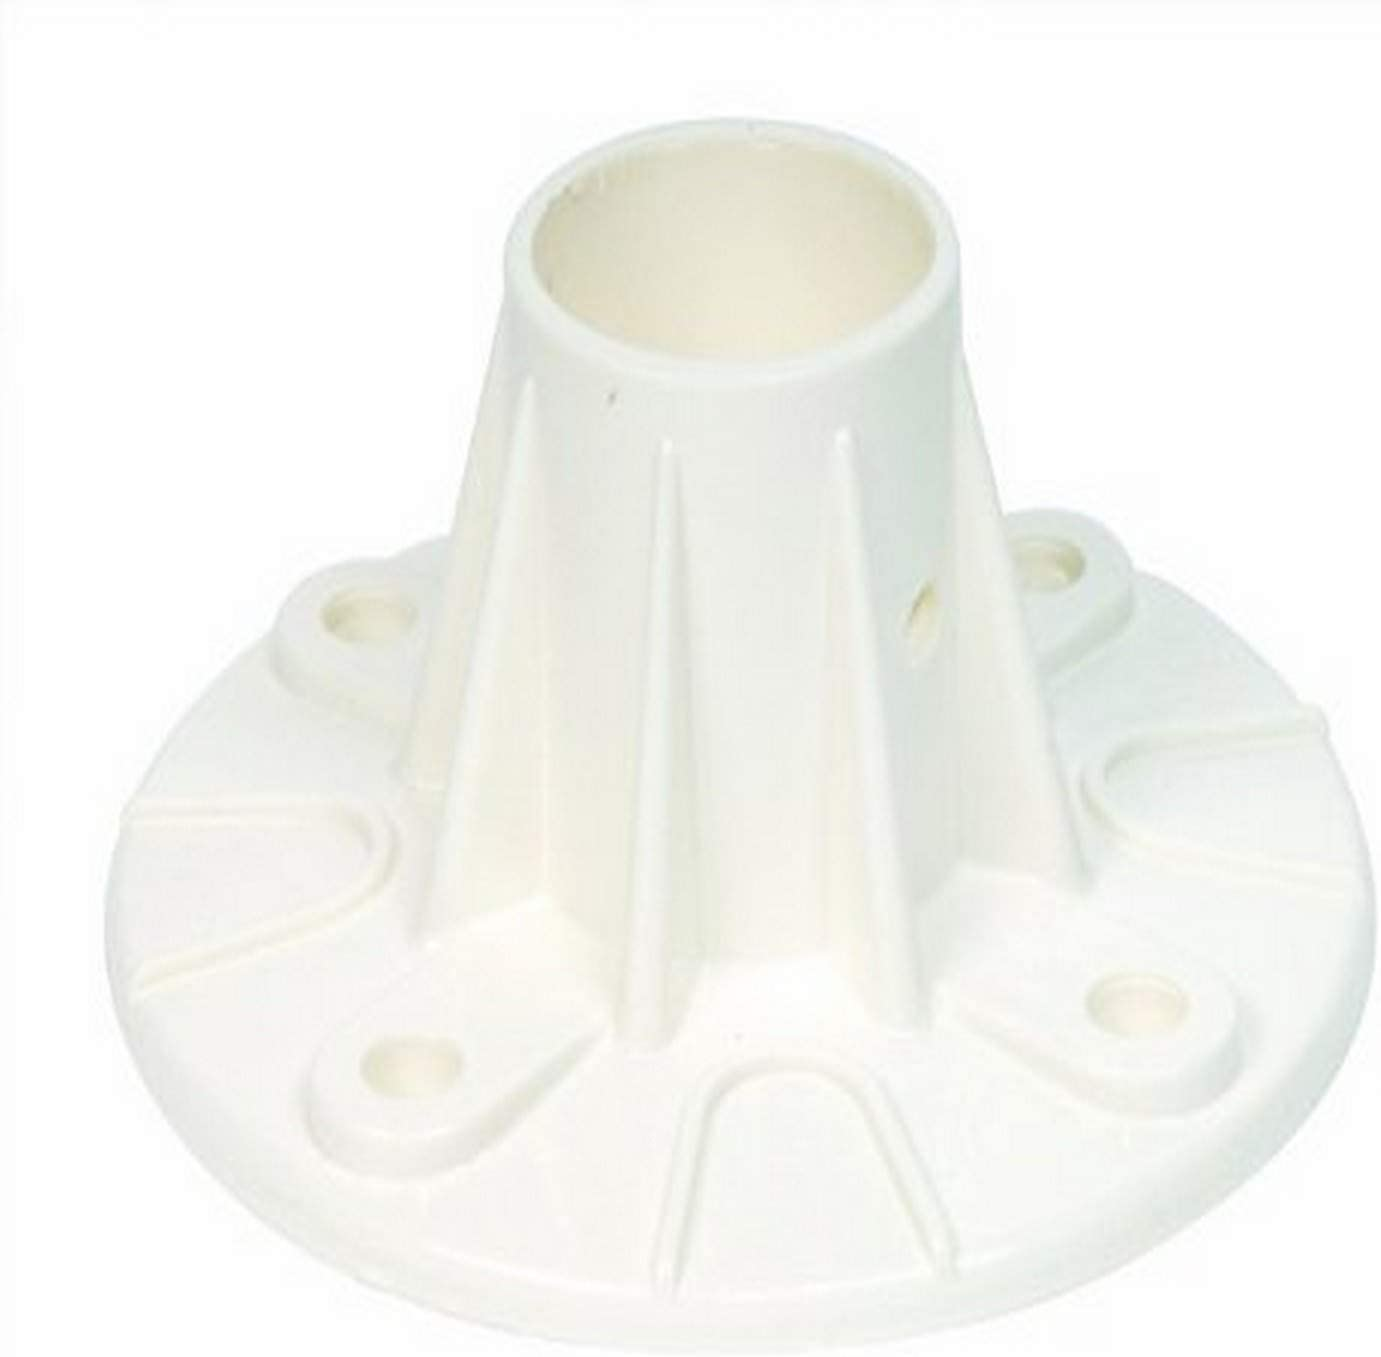 S.R. Smith 05-623 Plastic Deck-Mounted Flange, Single